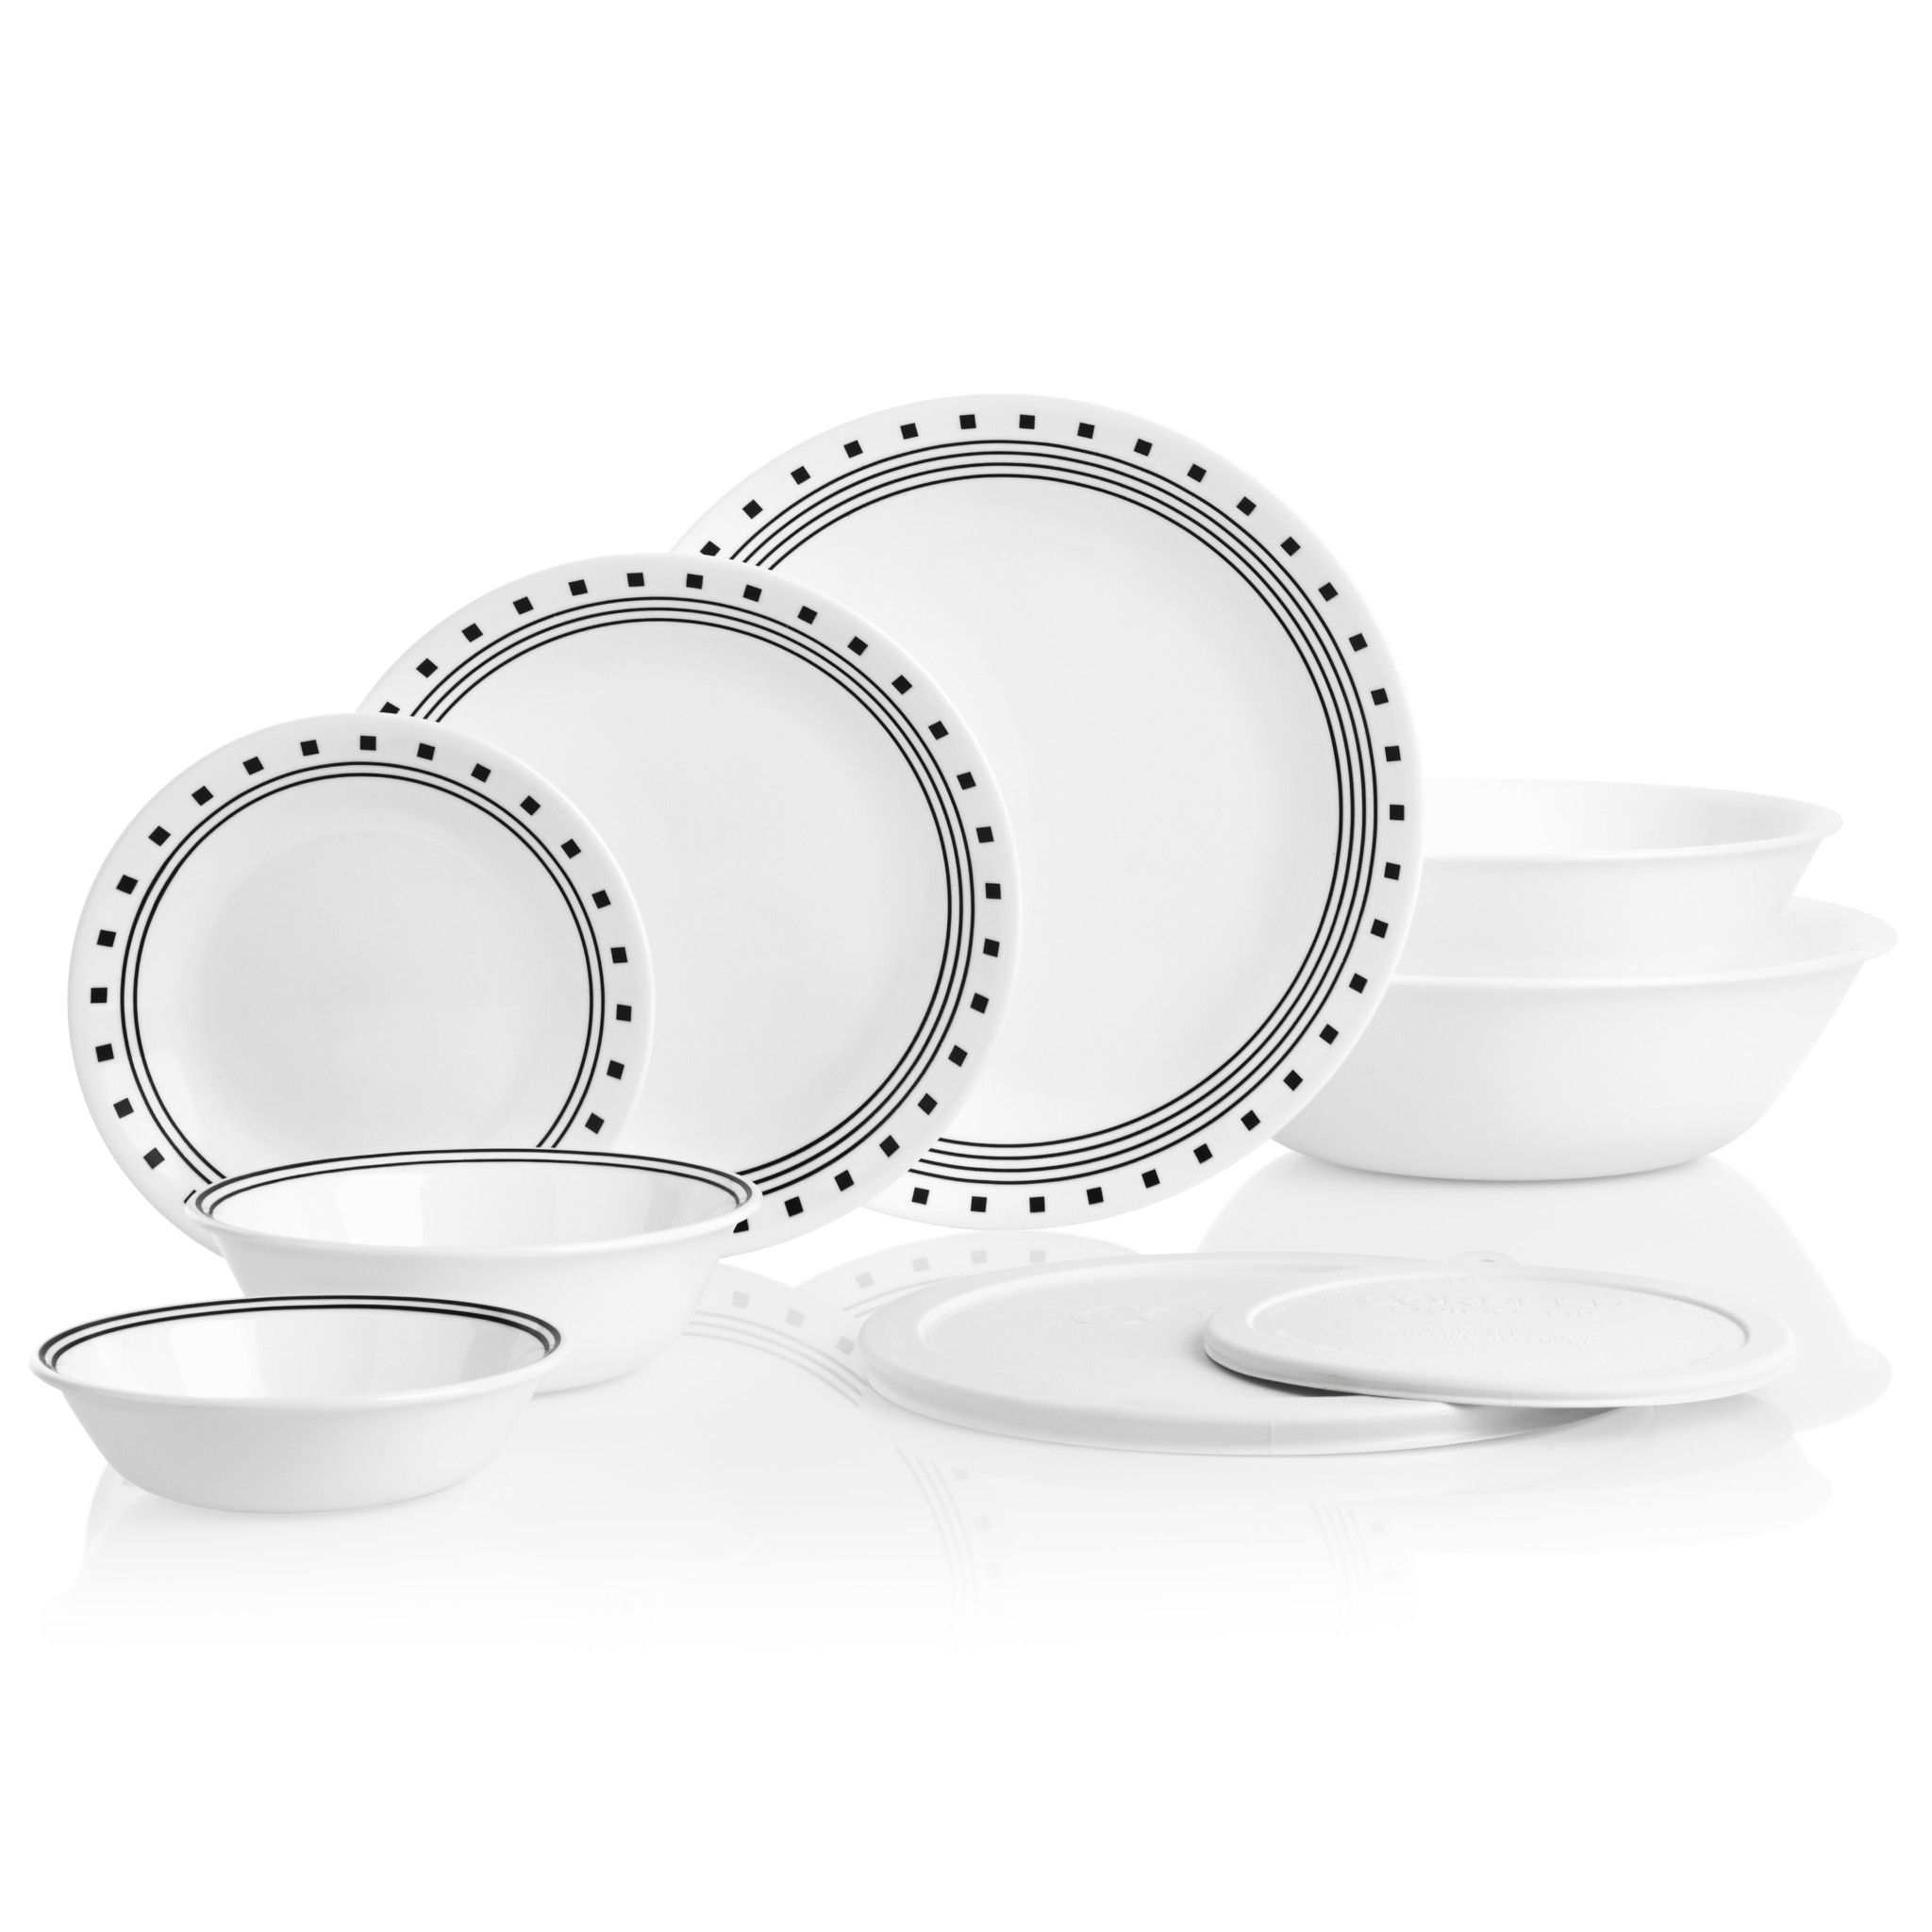 Corelle_Livingware_City_Block_78pc_Dinnerware_Set